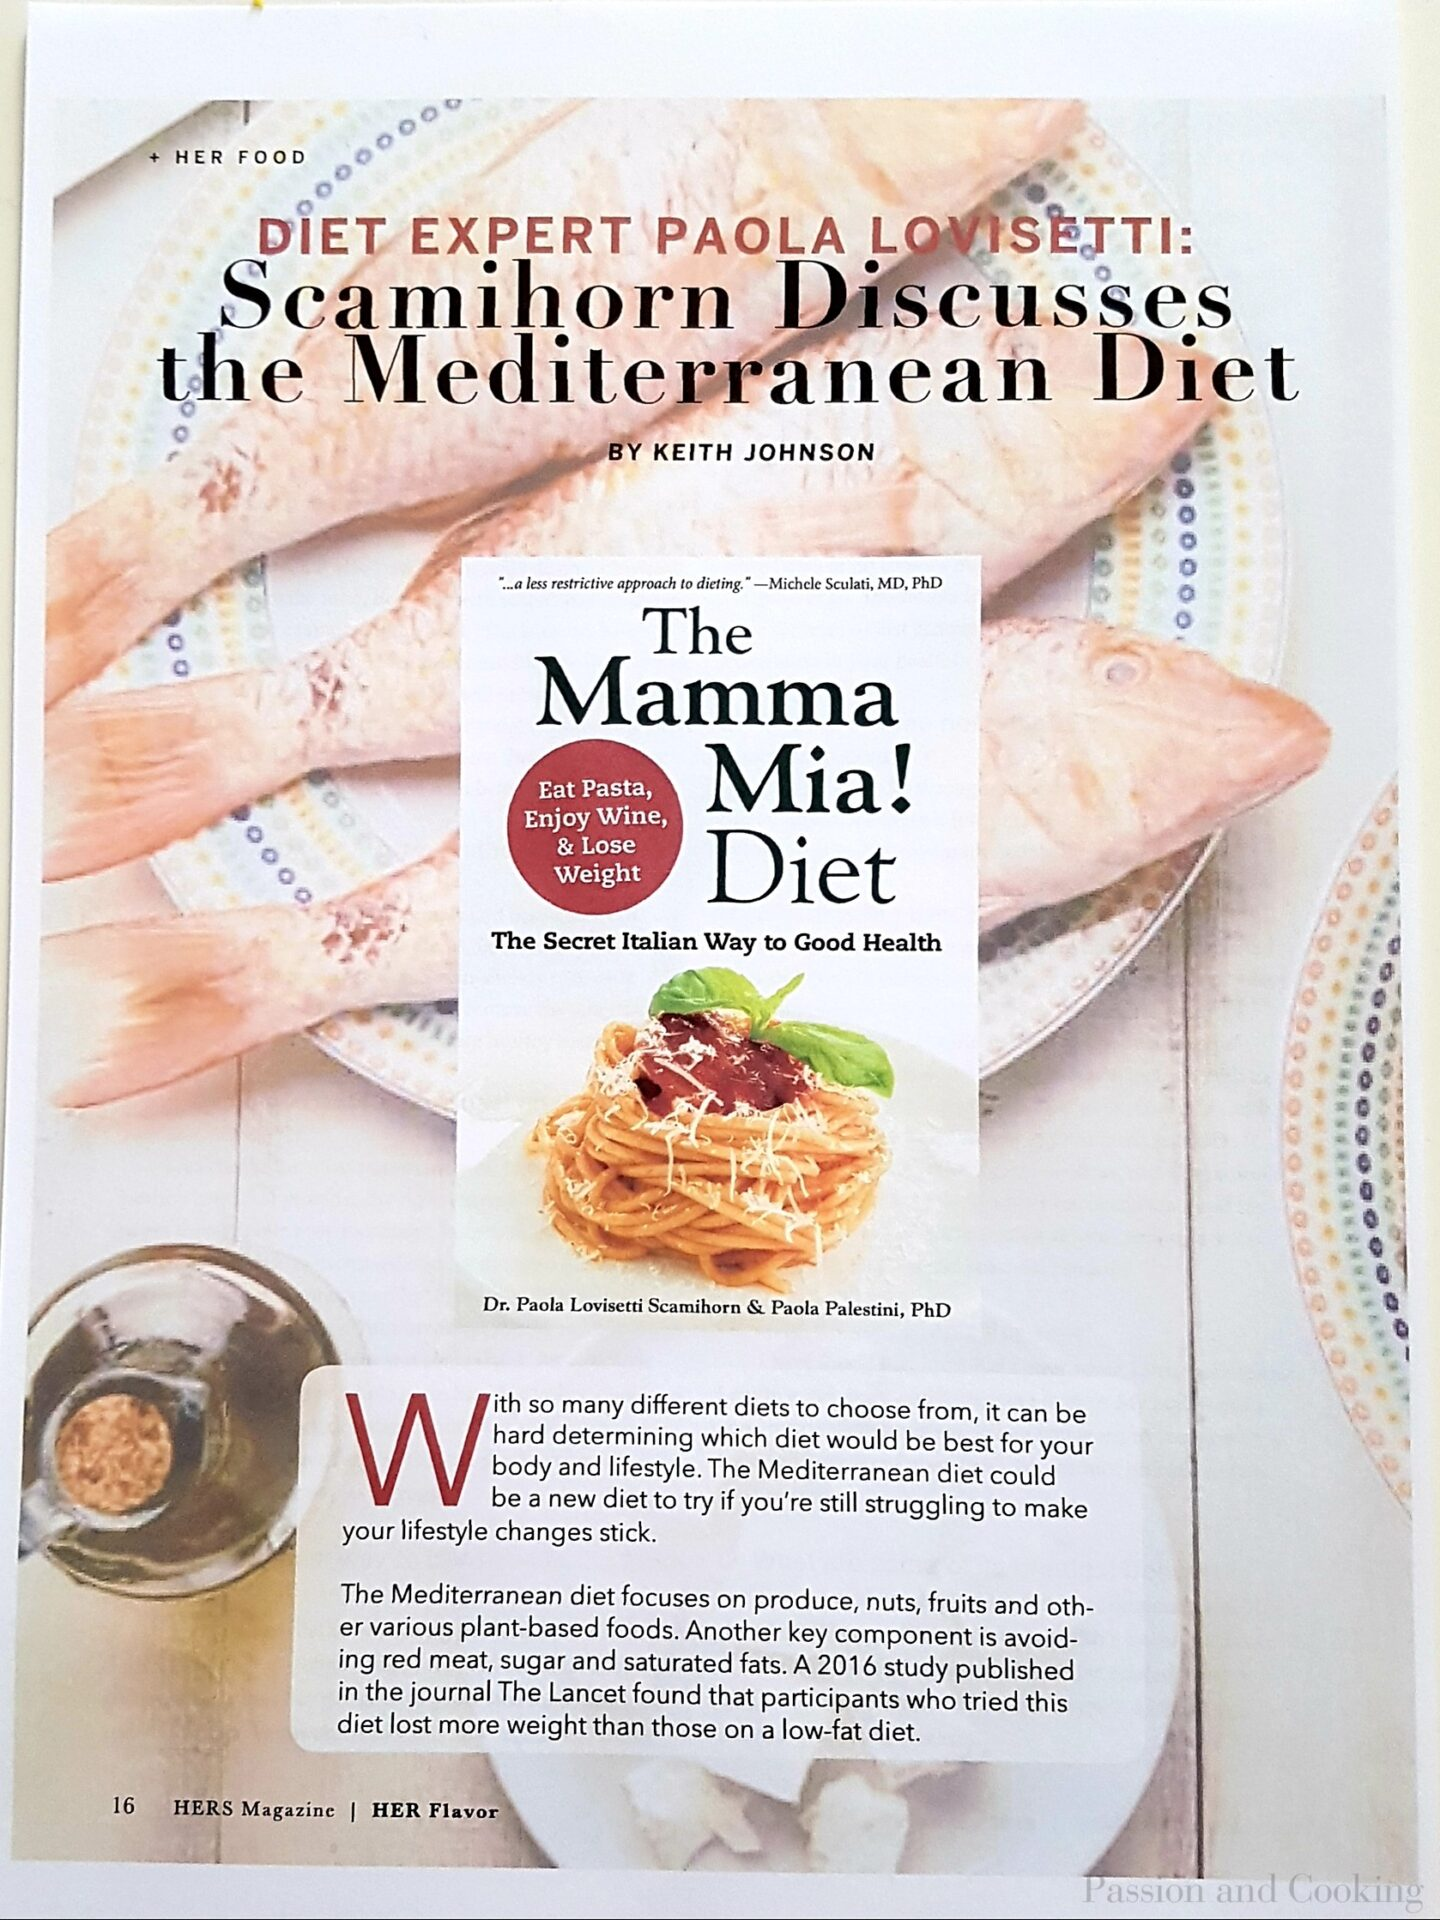 New Mediterranean diet, The Mamma Mia Diet